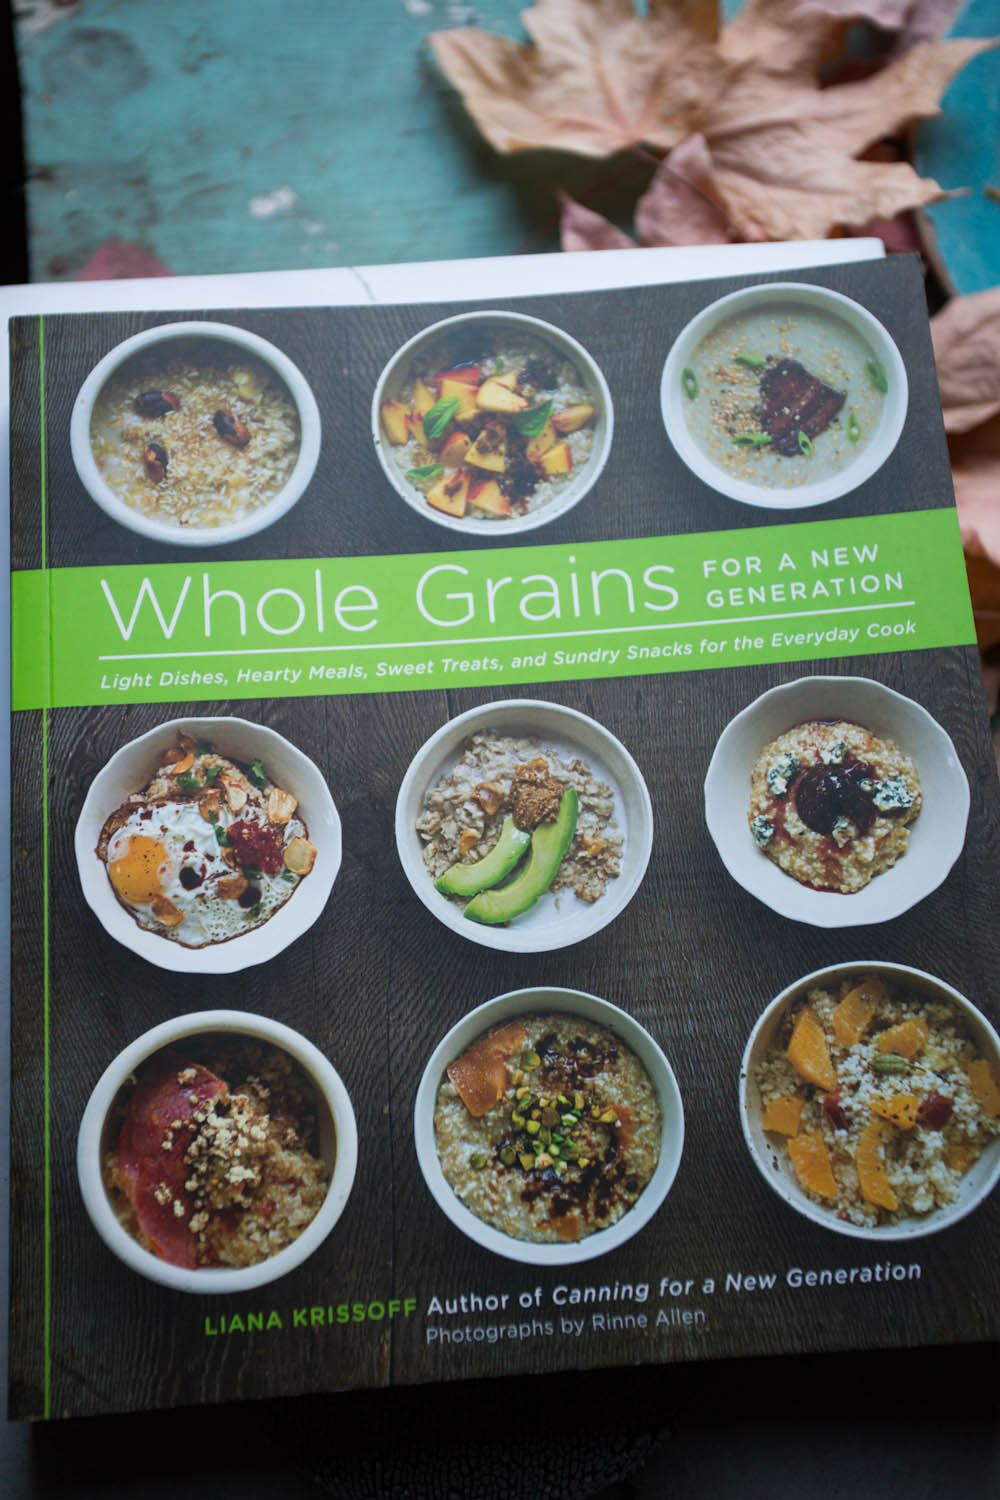 the second in a series of books with  liana krissoff ...with a focus on, you guessed it, whole grains...once again, liana's cooking was so inspiring and we had a great shoot at  the shotgun house  across the street from my studio. this cookbook  was a 2013 IACP Book award finalist.